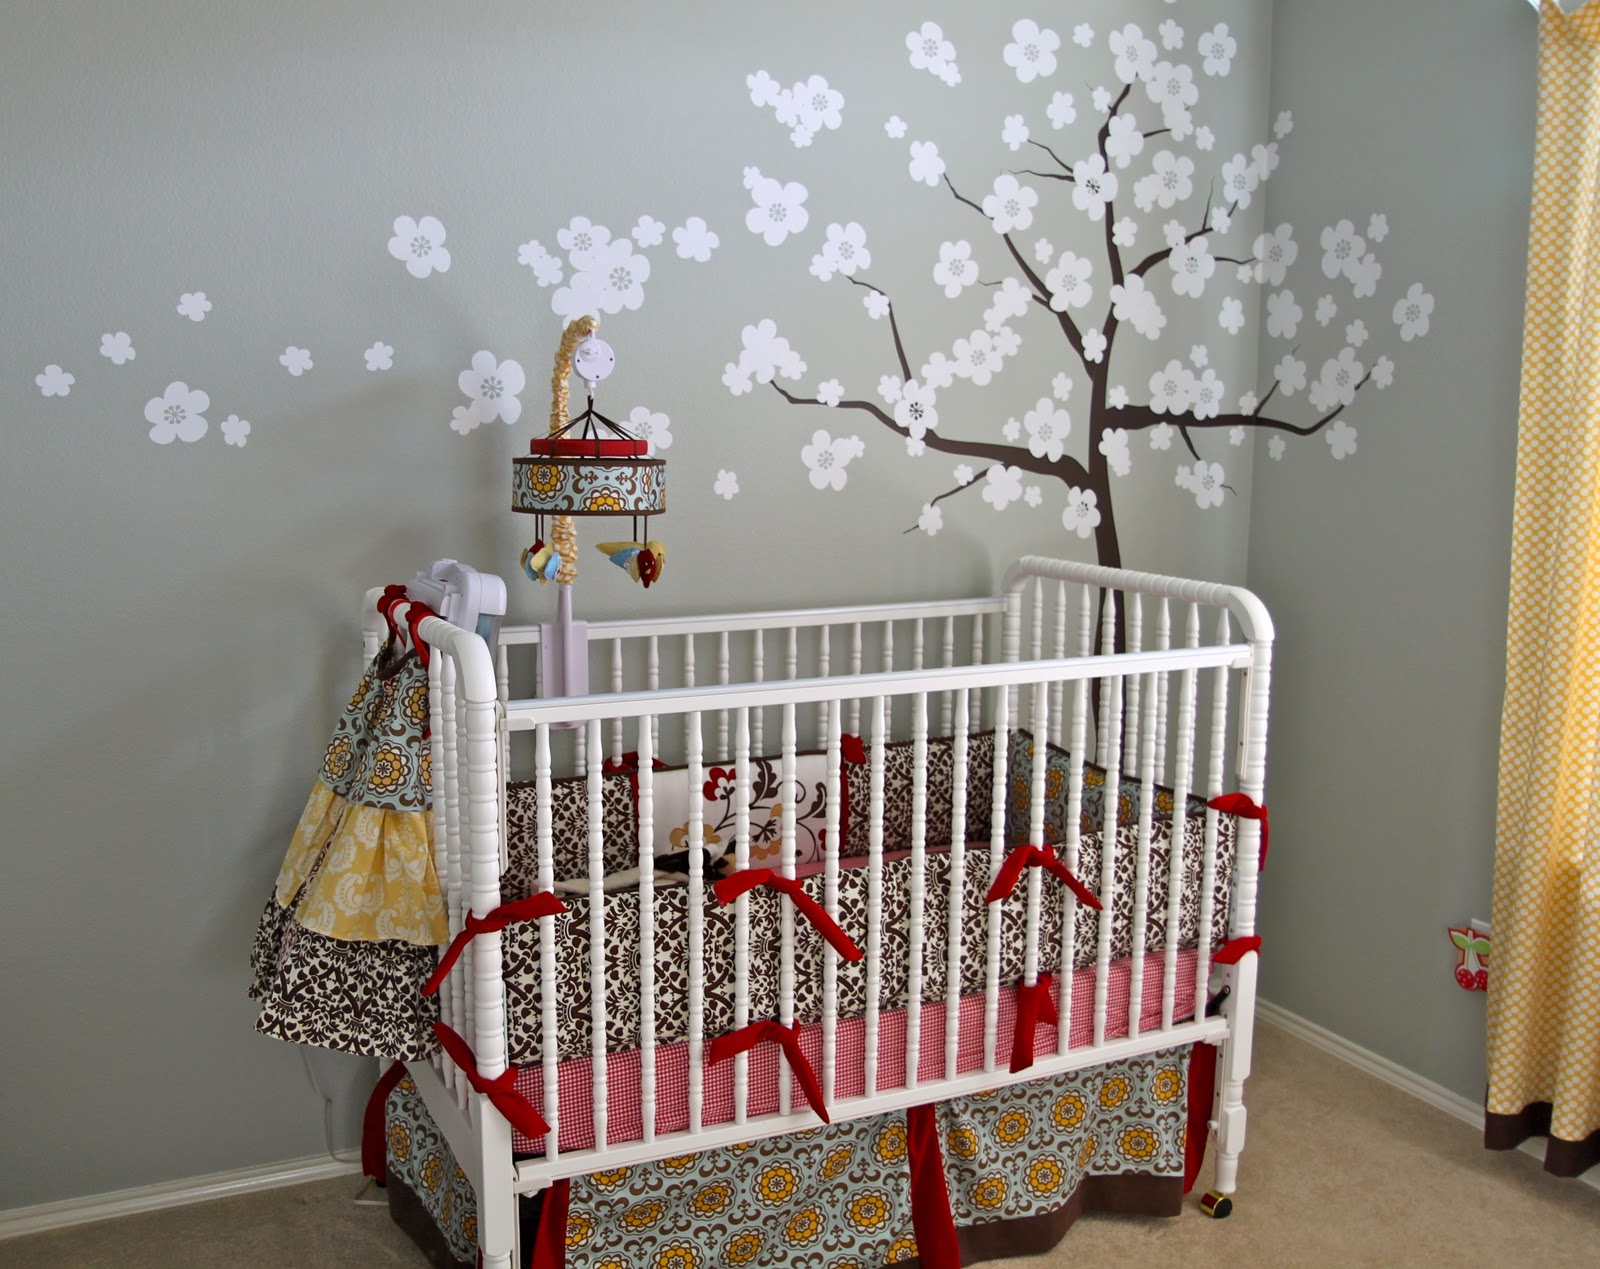 Baby nursery it 39 s quirky and so cute design dazzle Baby designs for rooms